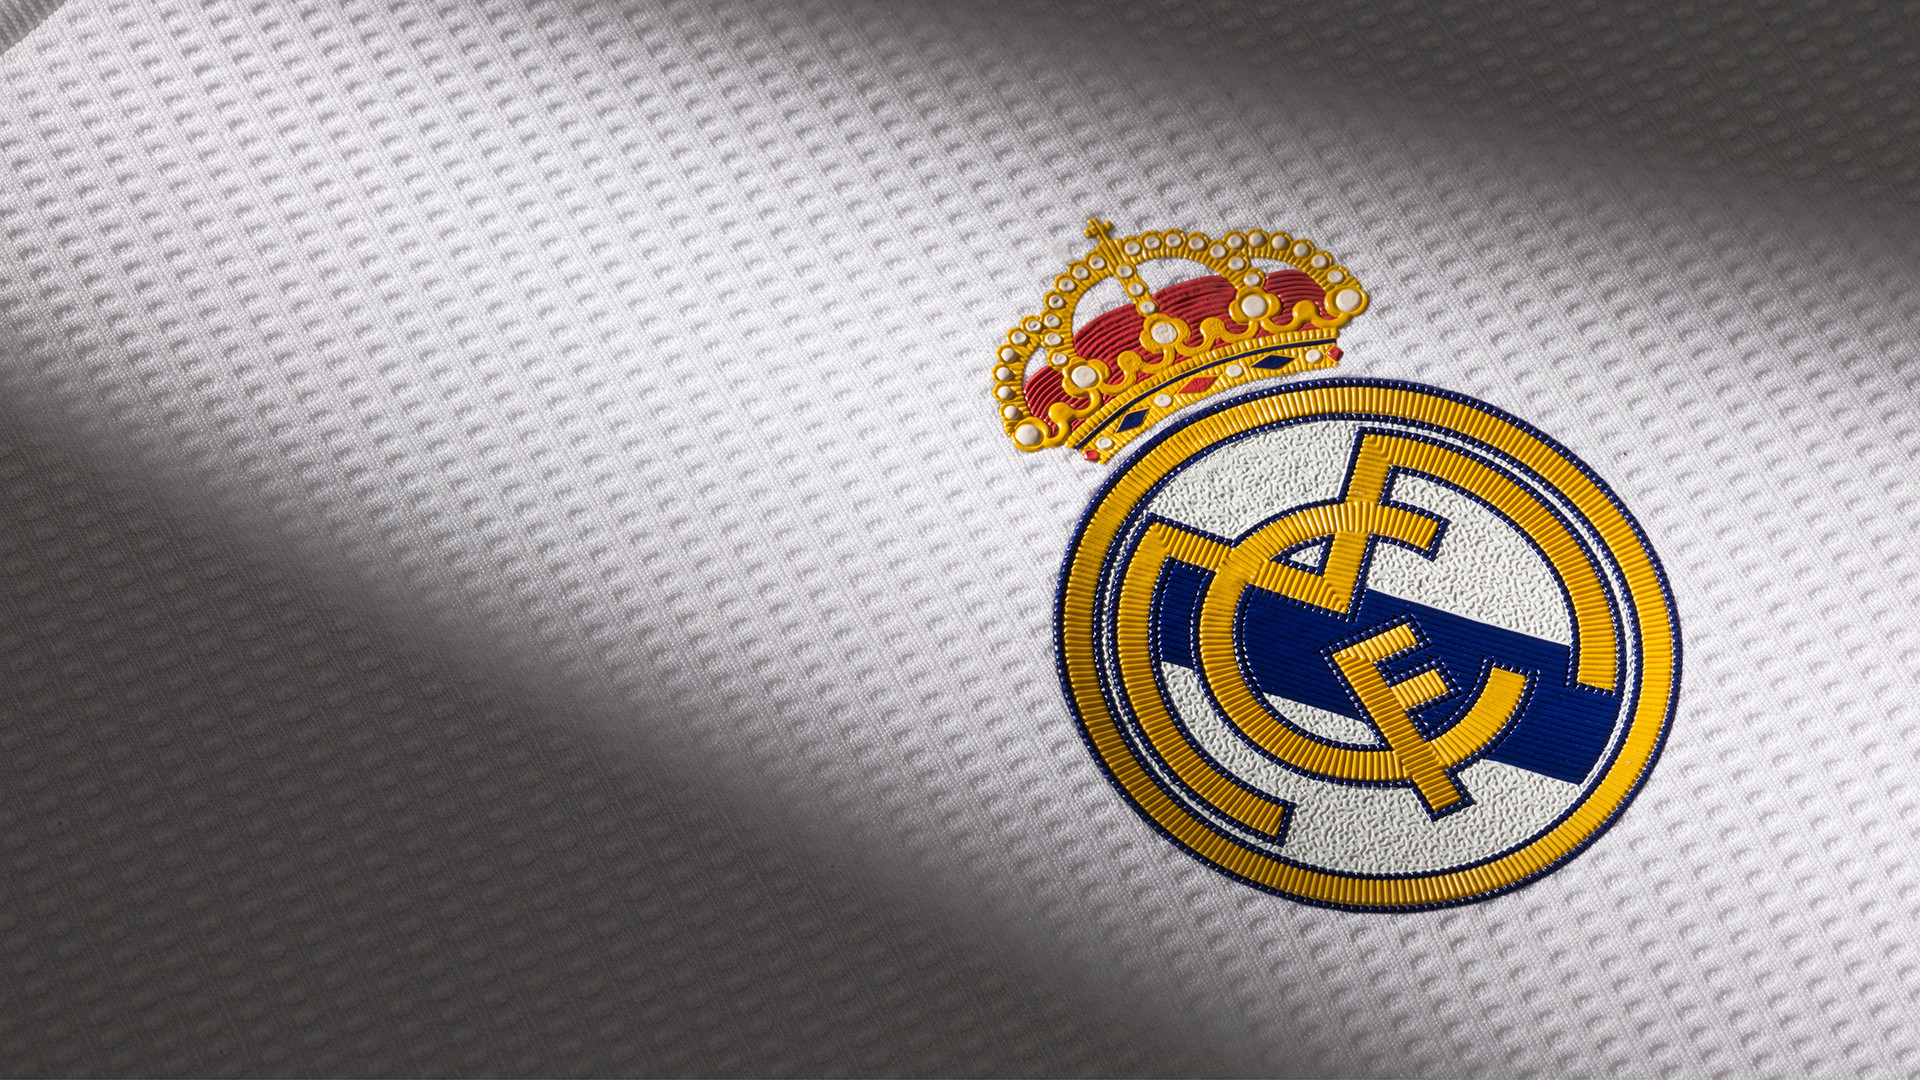 Real Madrid Wallpaper 75 images 1920x1080